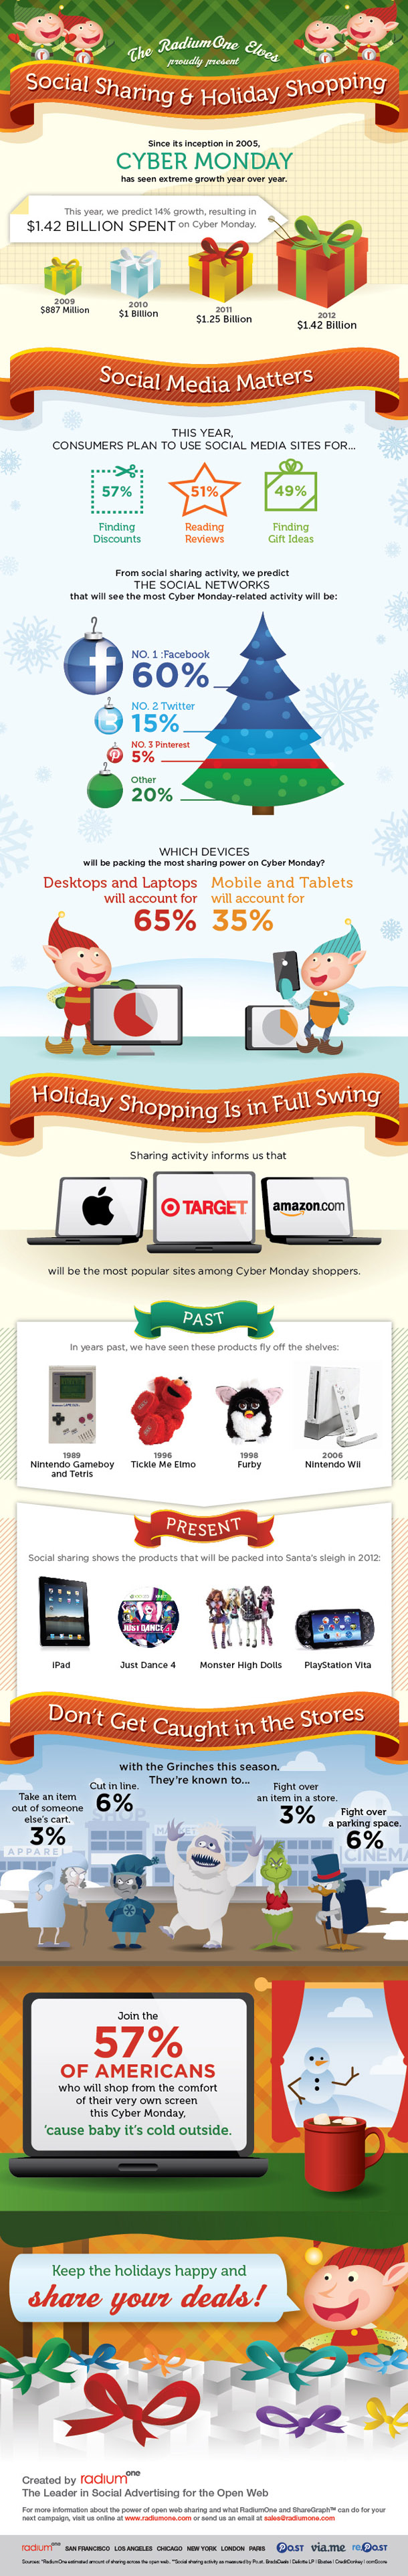 1 Cyber_Monday_Infographic